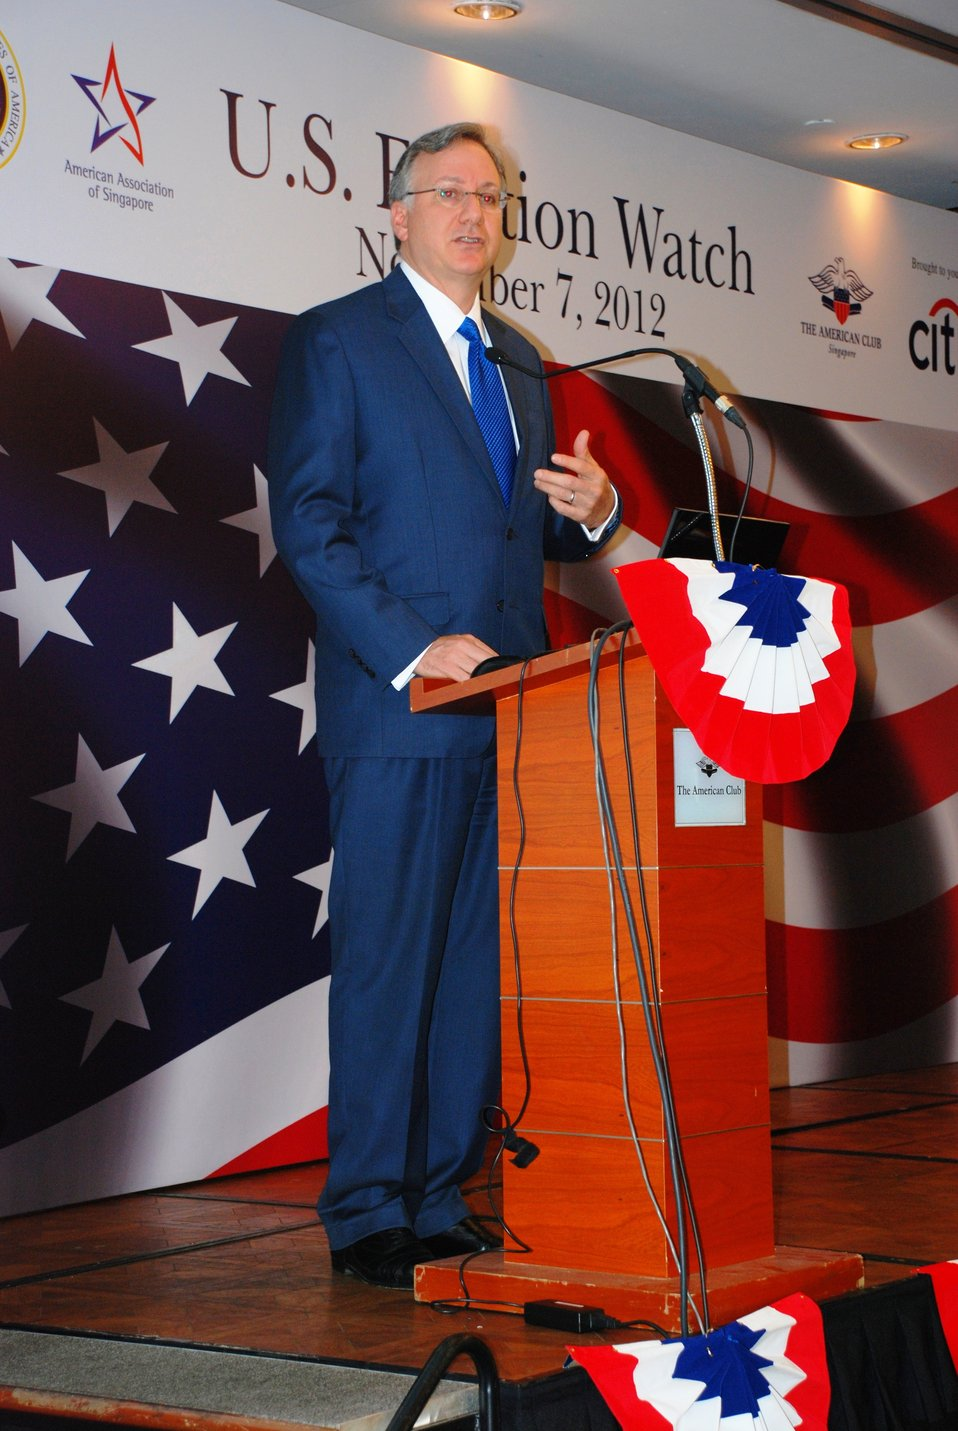 Ambassador Adelman Delivers Remarks at the 2012 U.S. Election Watch Event